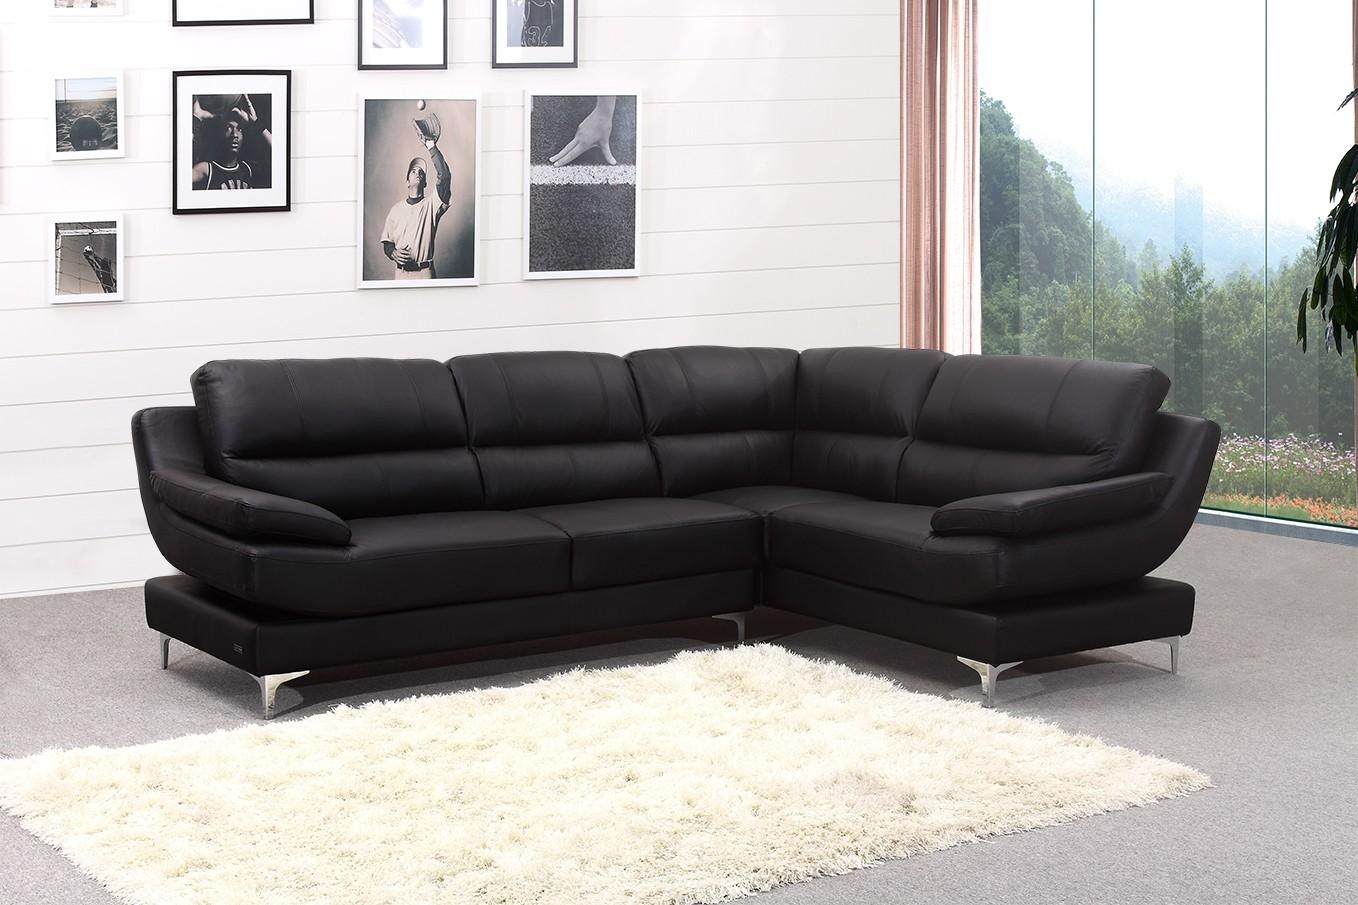 20 Choices Of Black Corner Sofas Sofa Ideas